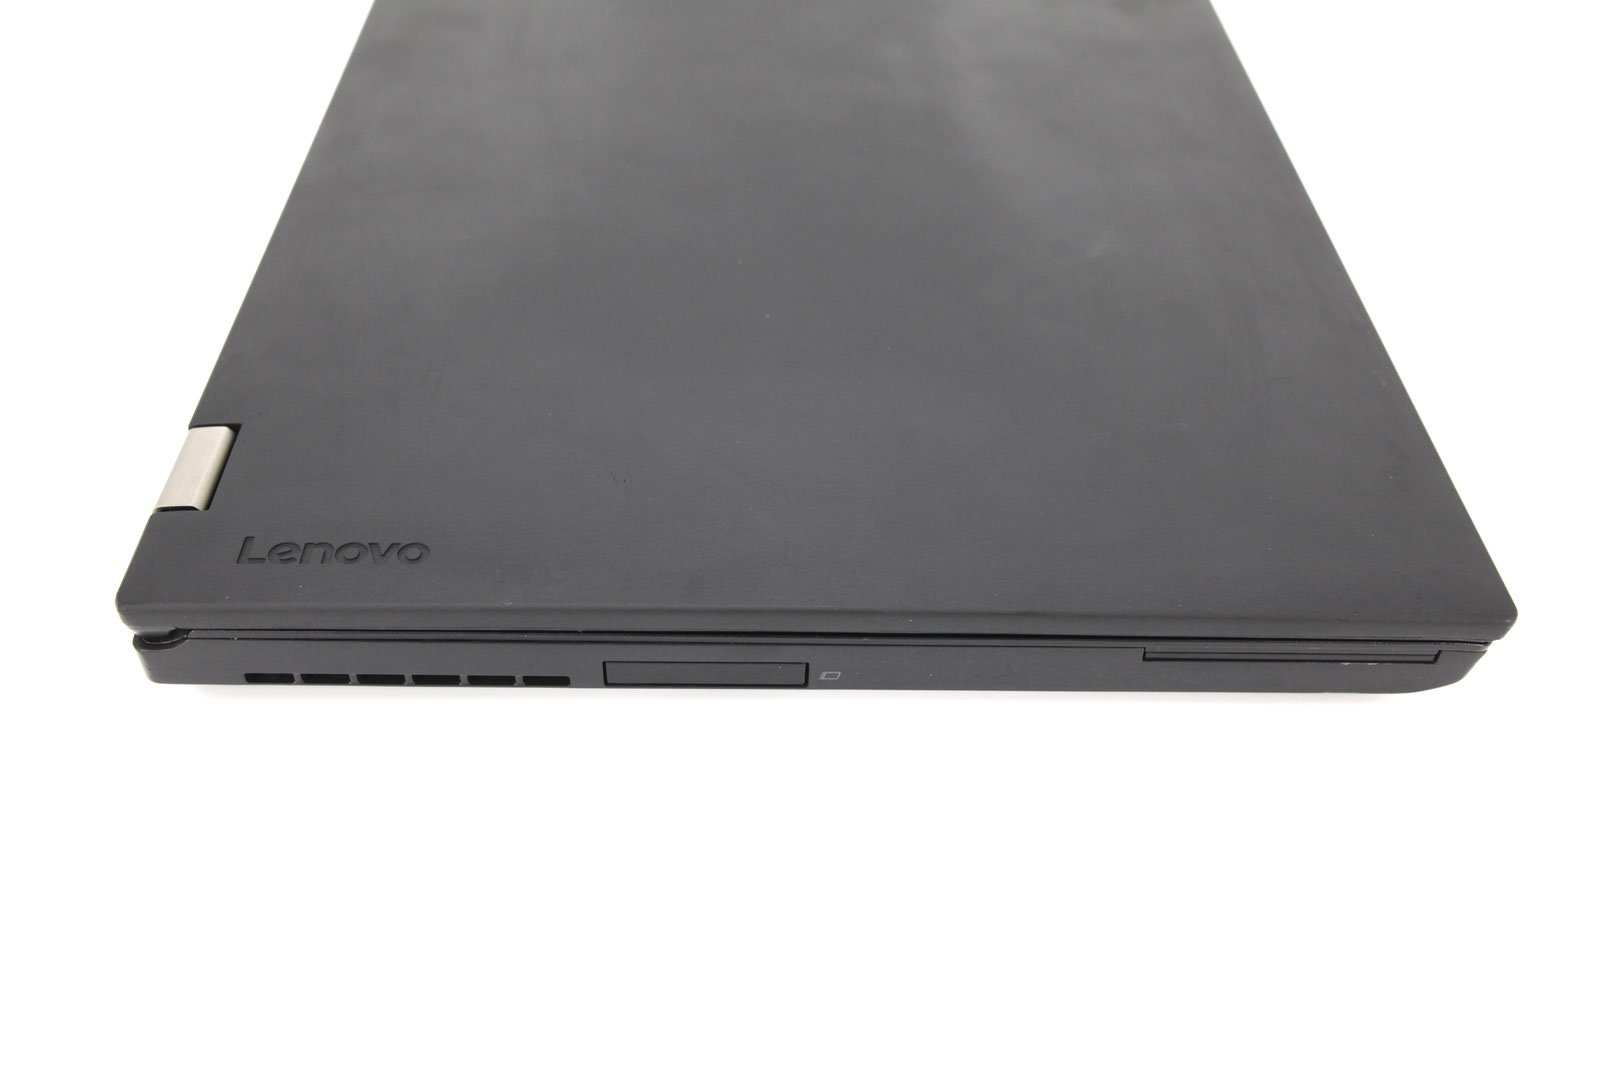 Lenovo ThinkPad P51 Laptop: Xeon 64GB ECC RAM 512GB SSD, Quadro Warranty - CruiseTech